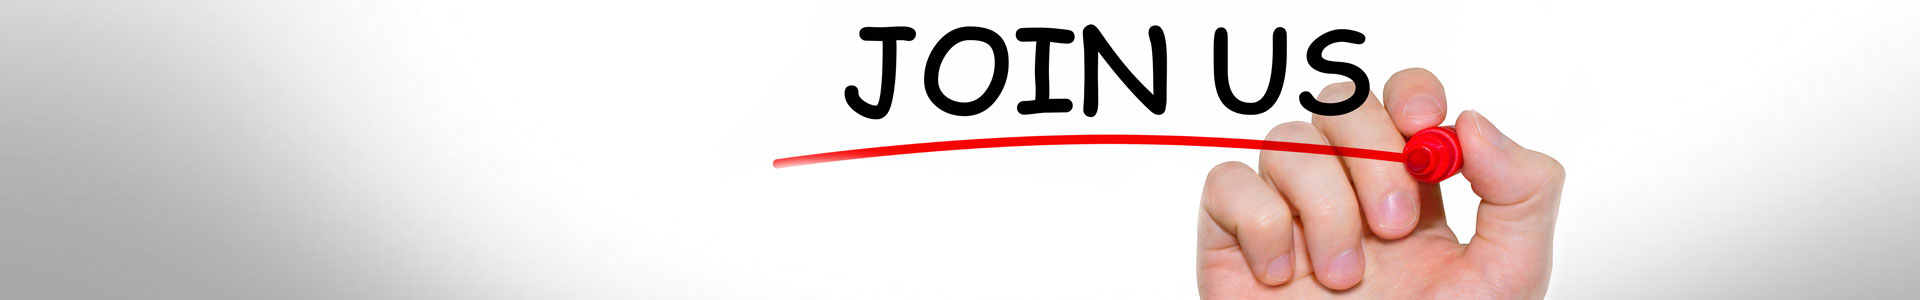 join us written